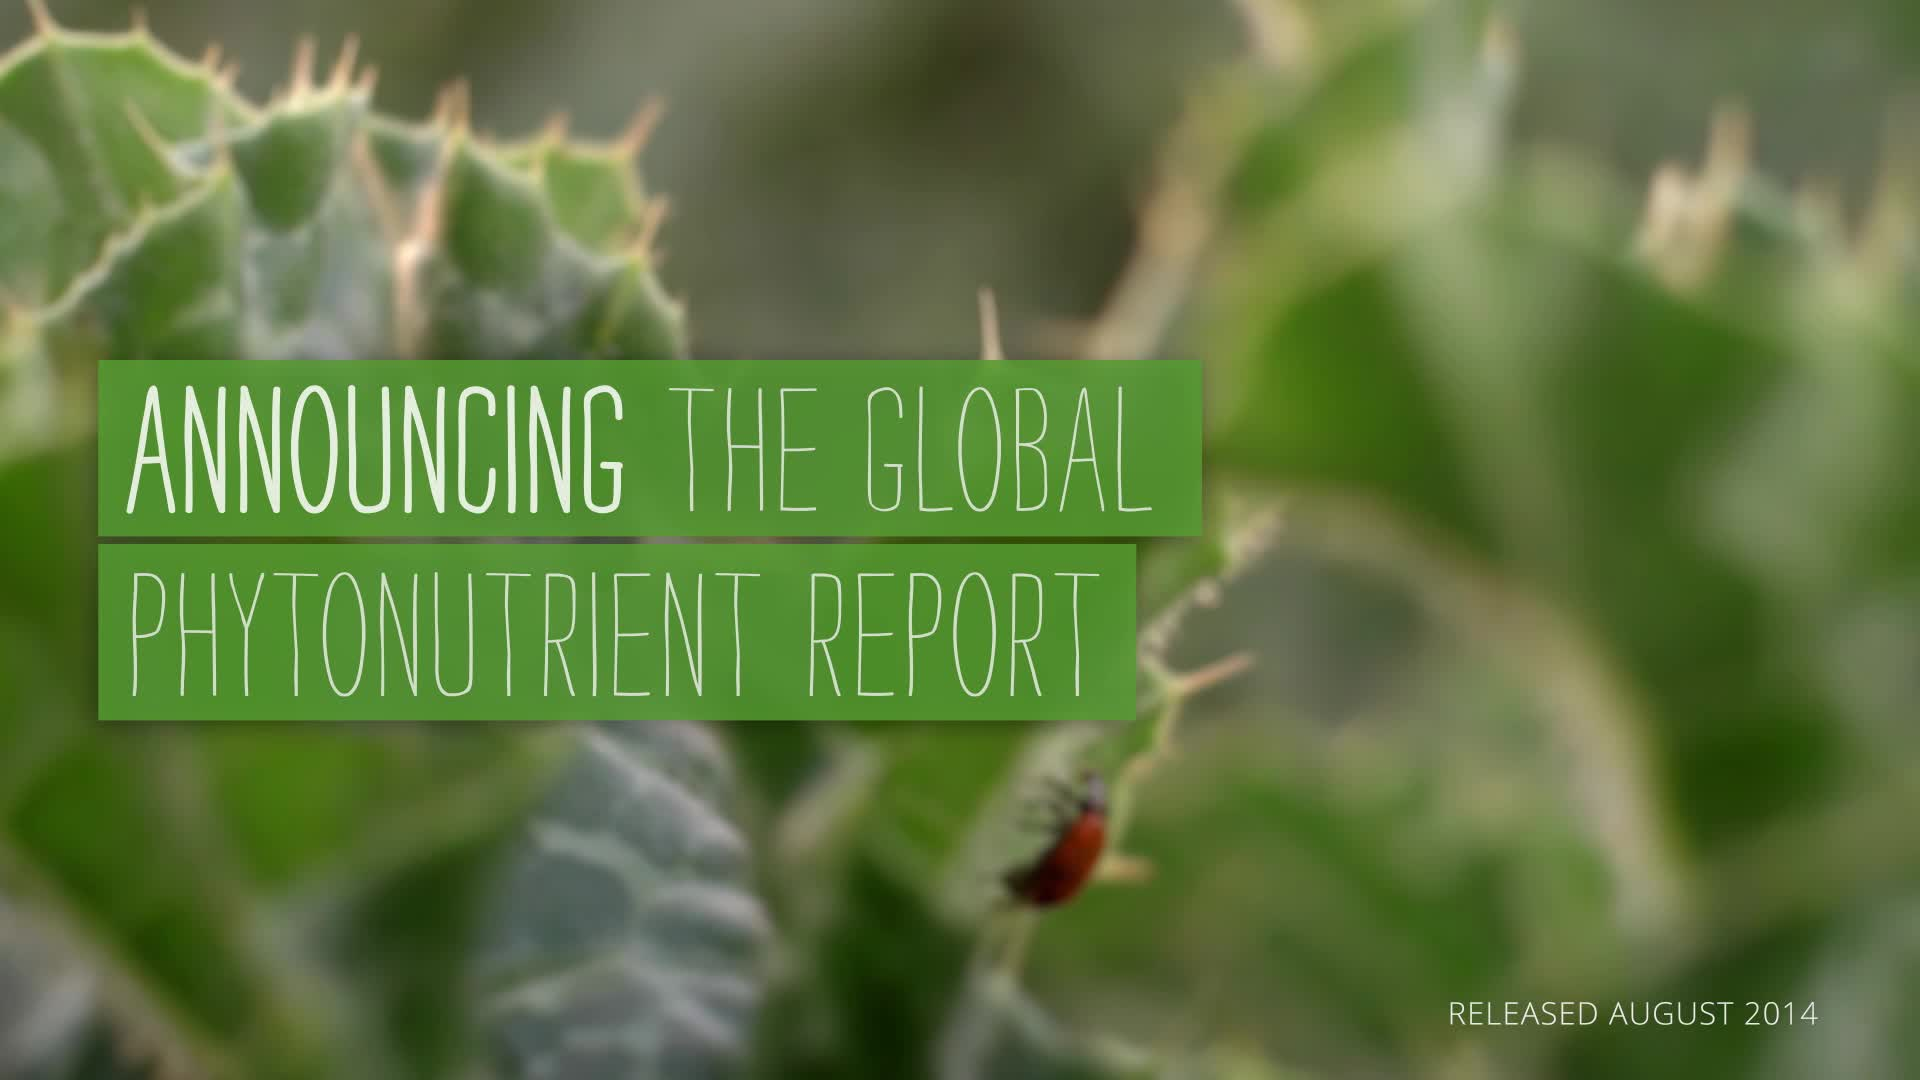 Research co-author Dr. Keith Randolph discusses the significance of the Global Phytonutrient Report.